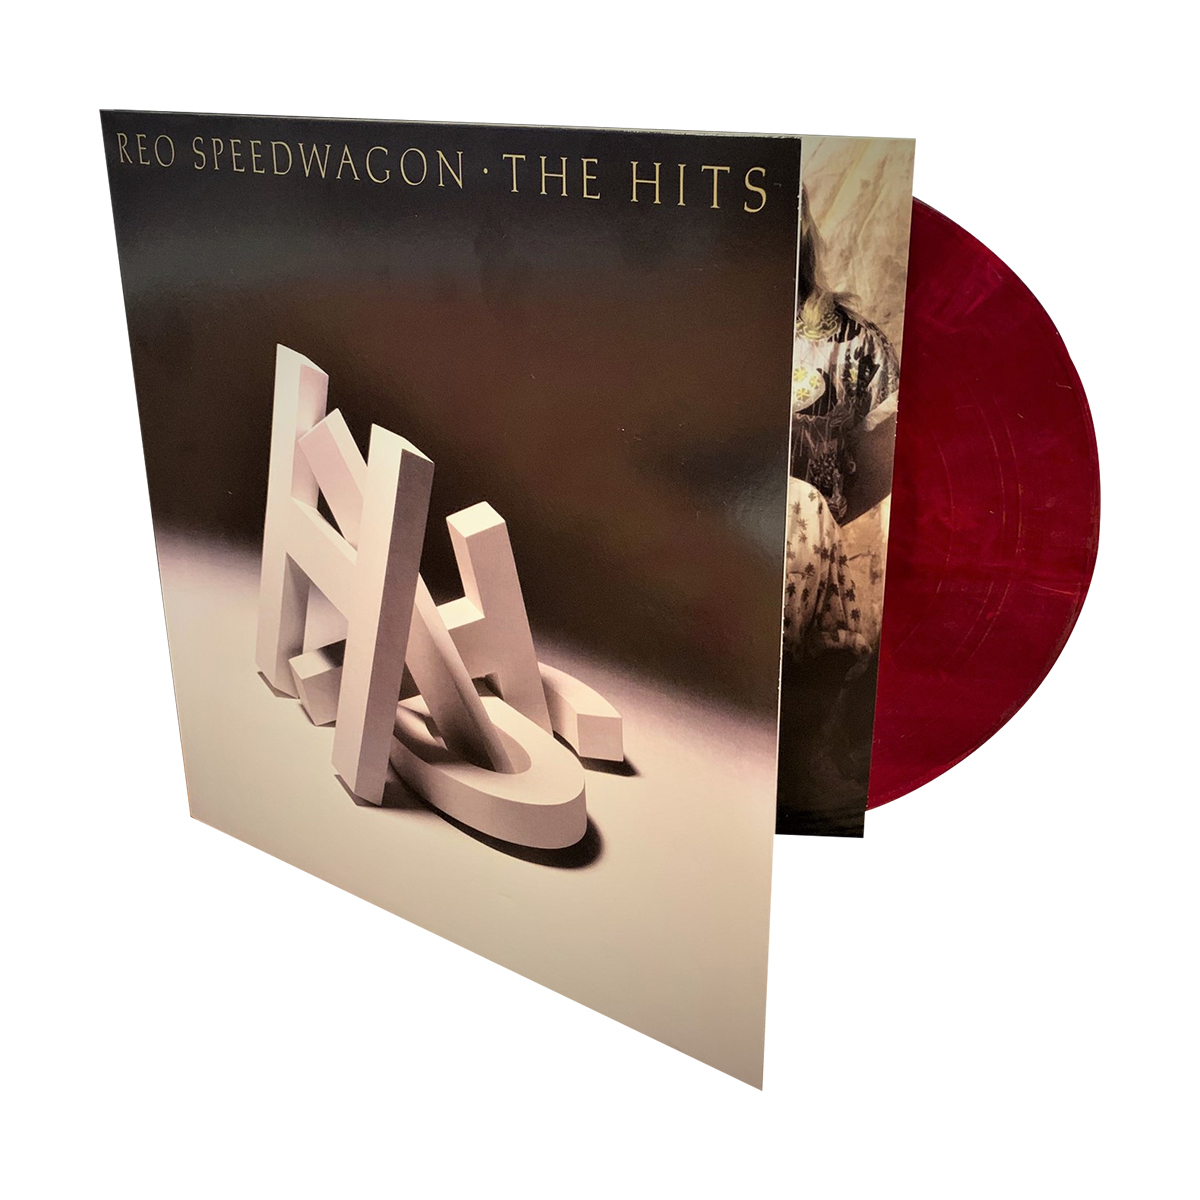 REO Speedwagon - The Hits (180 Gram Translucent Red Audiophile Vinyl/Limited Edition/Gatefold Cover)